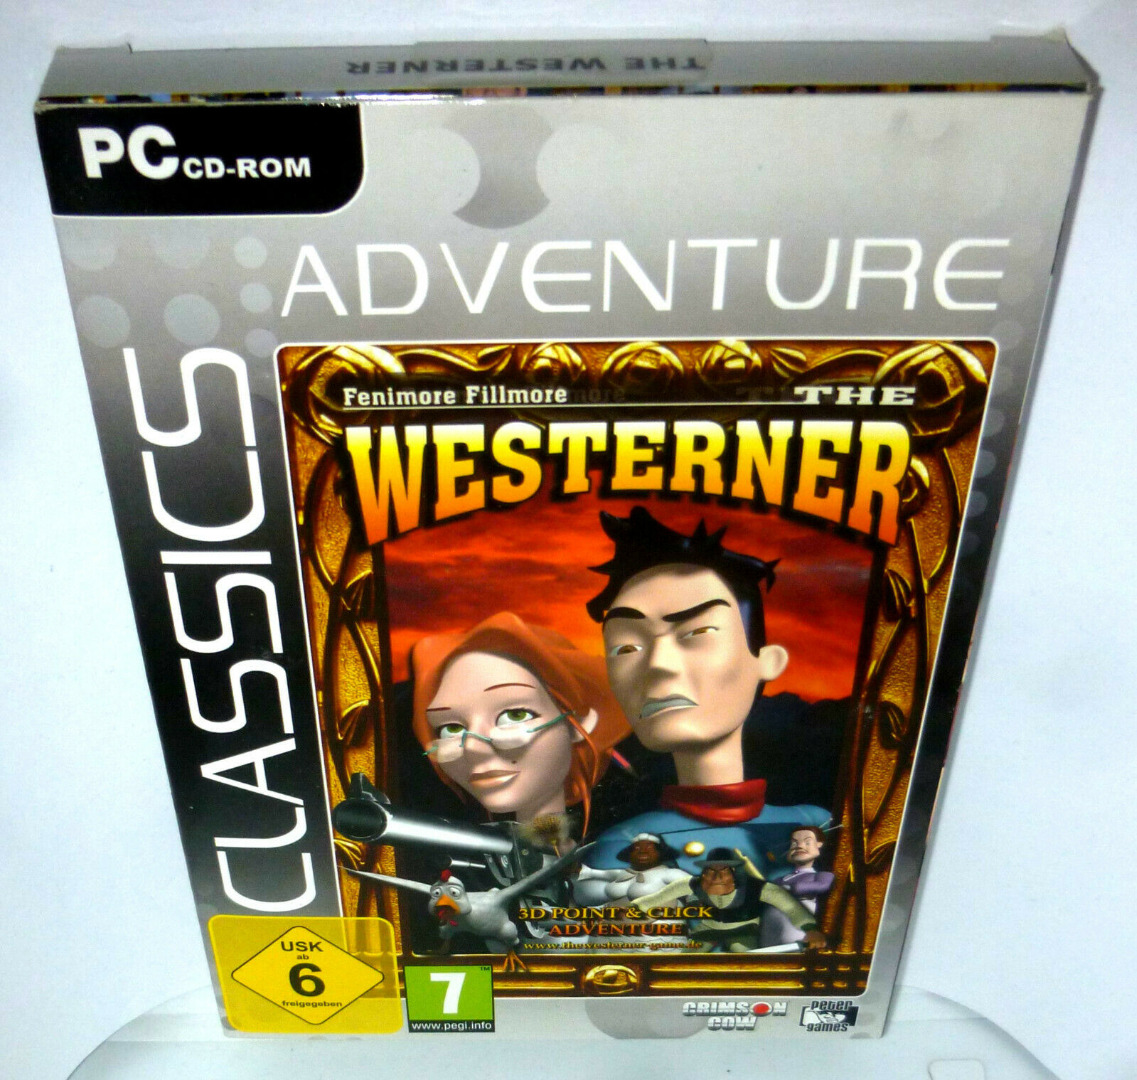 PC-Spiel DVD-ROM The Western Fenimore Fillmore